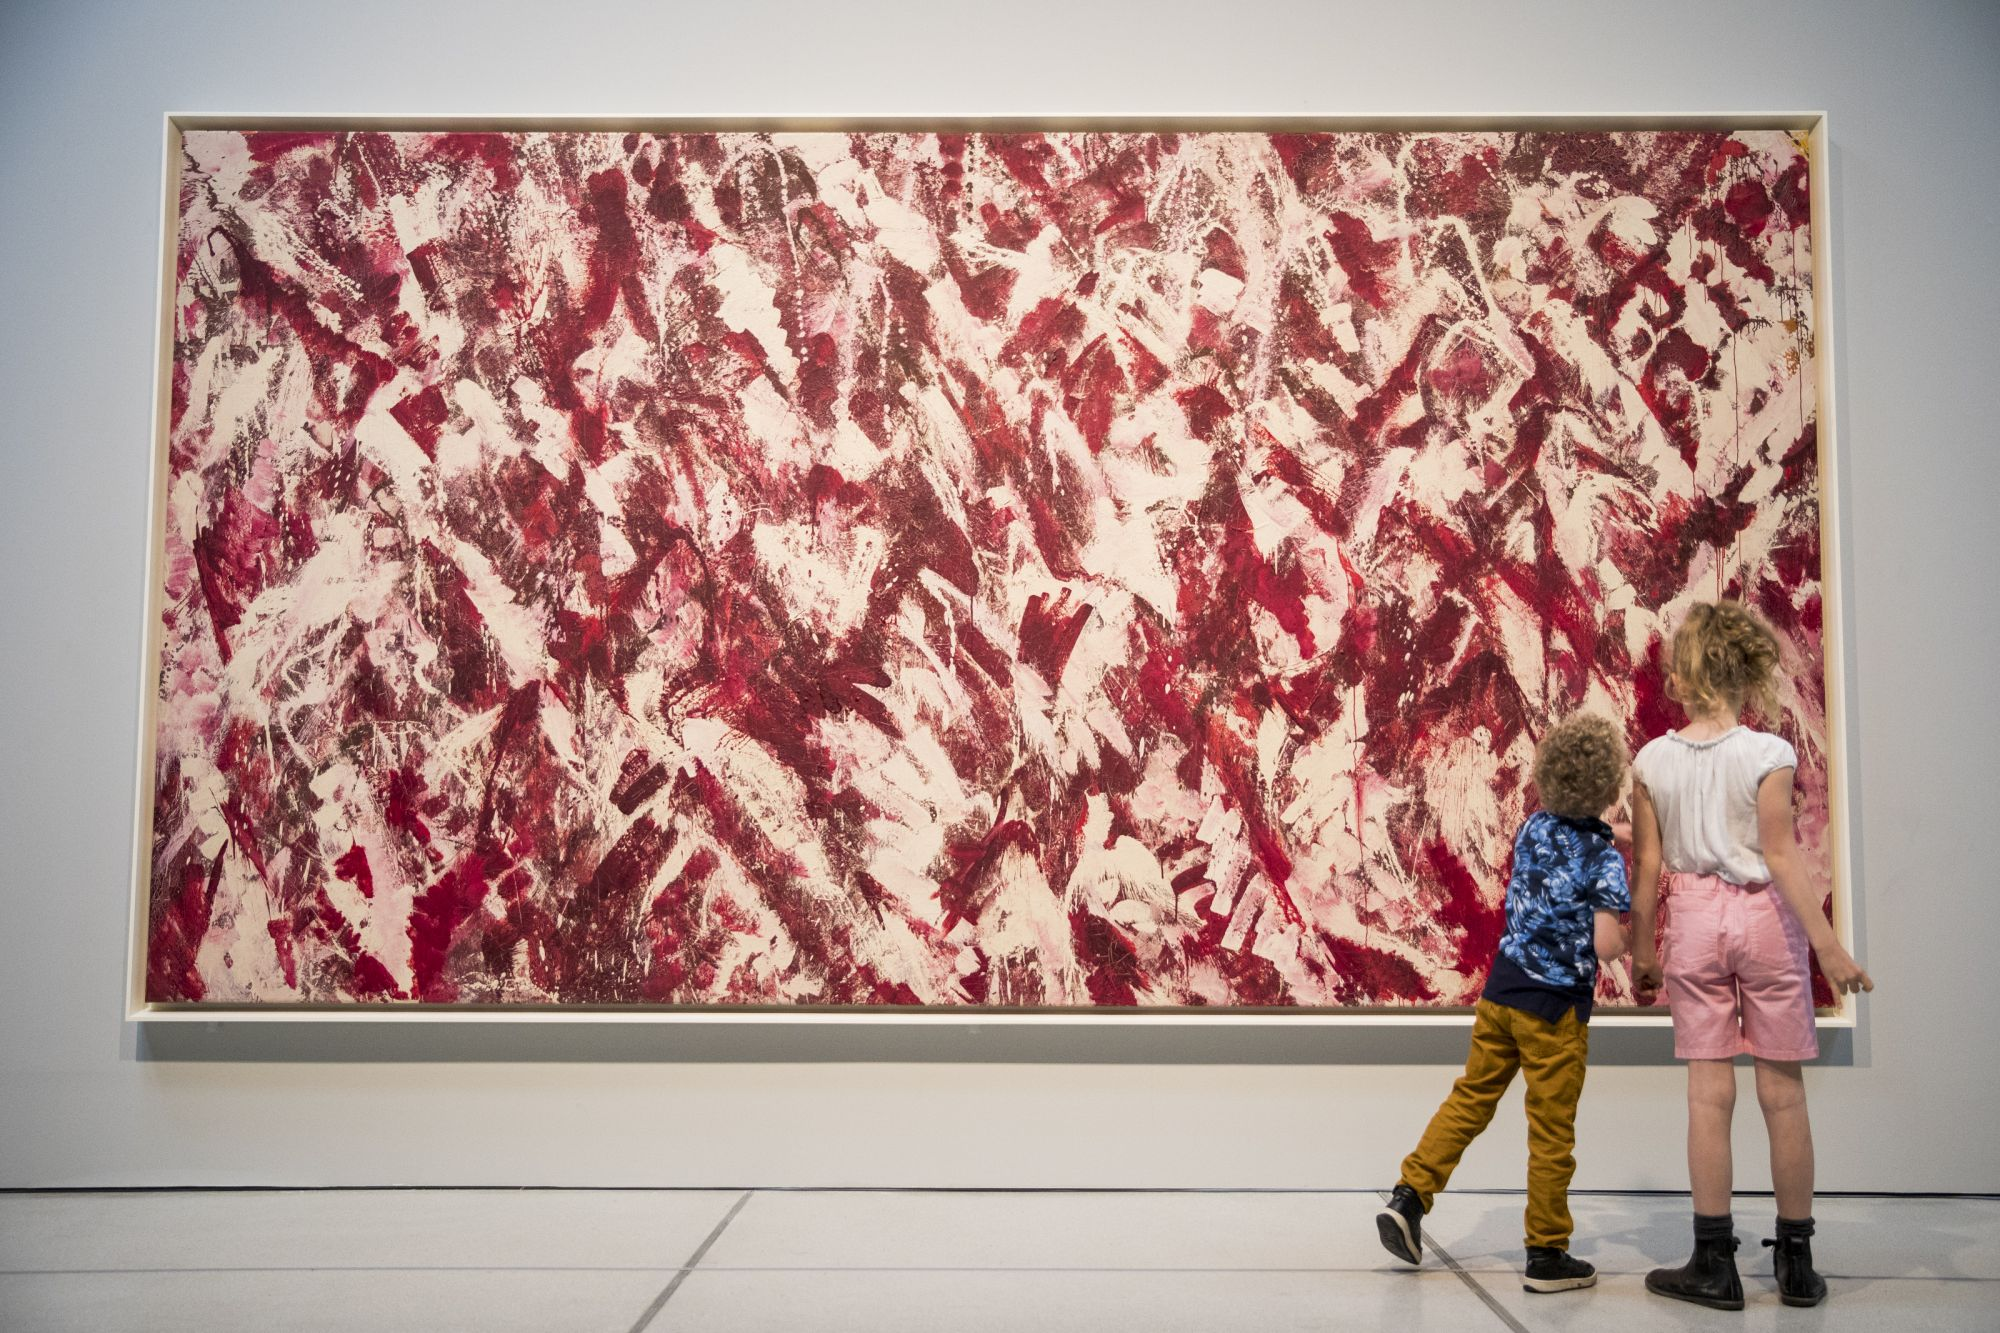 LONDON, ENGLAND - MAY 29:  Lee Krasner: Living Colour exhibition at Barbican Art Gallery on May 29, 2019 in London, England.  The exhibition is on view 30 May - 1 September 2019. (Photo by Tristan Fewings/Getty Images for Barbican Art Gallery)